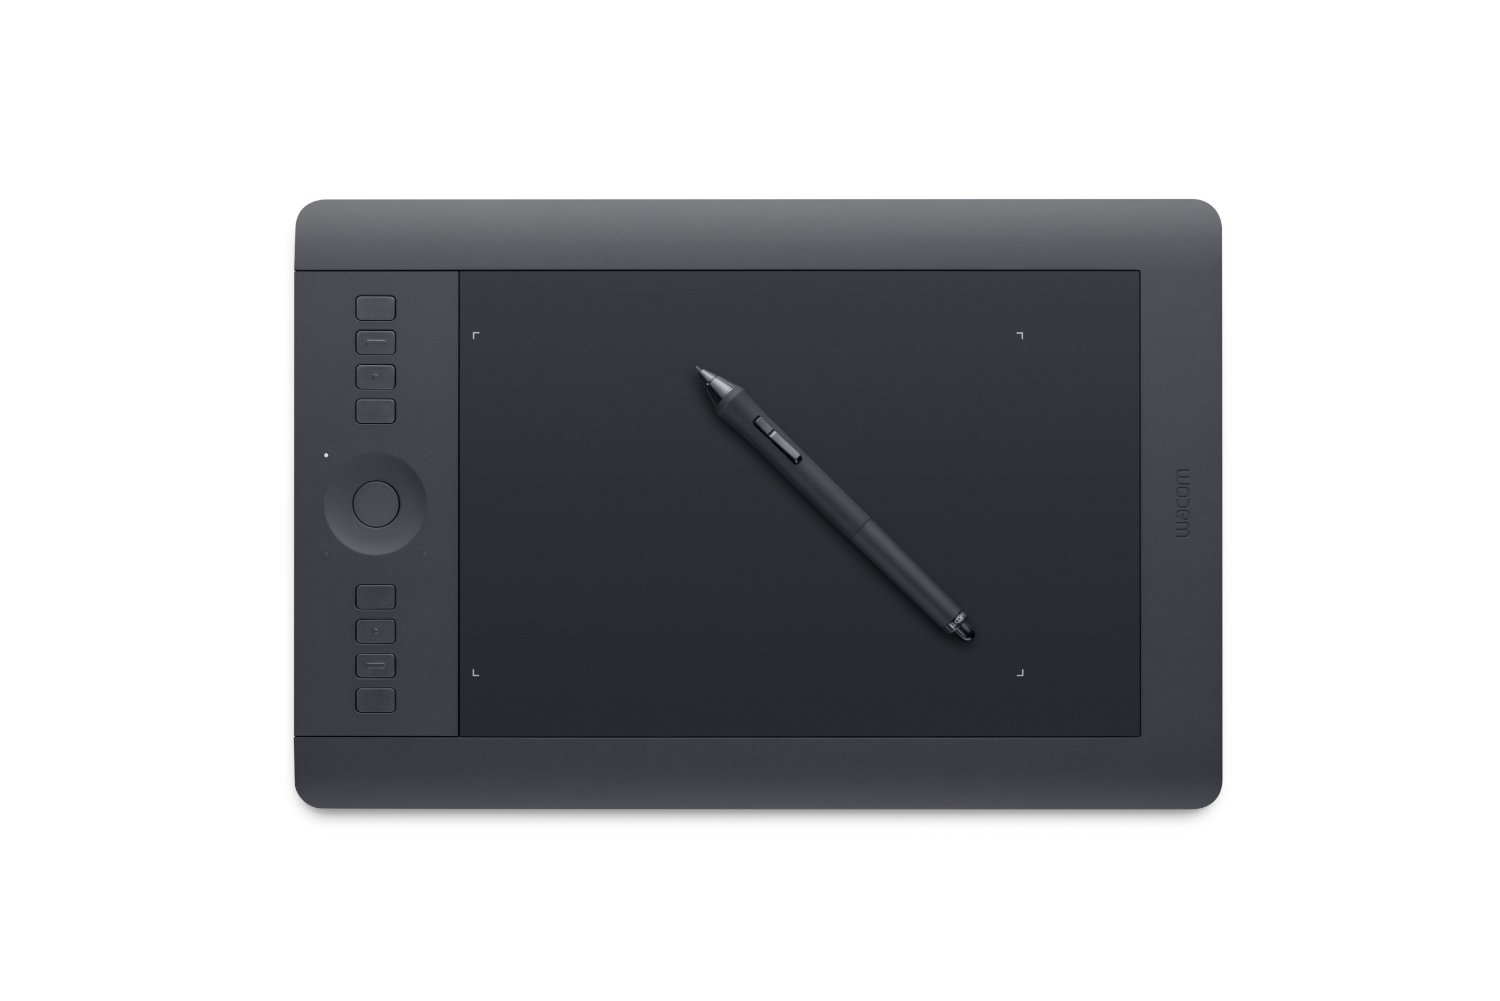 Wacom Intuos Pro Pen and Touch PTH651